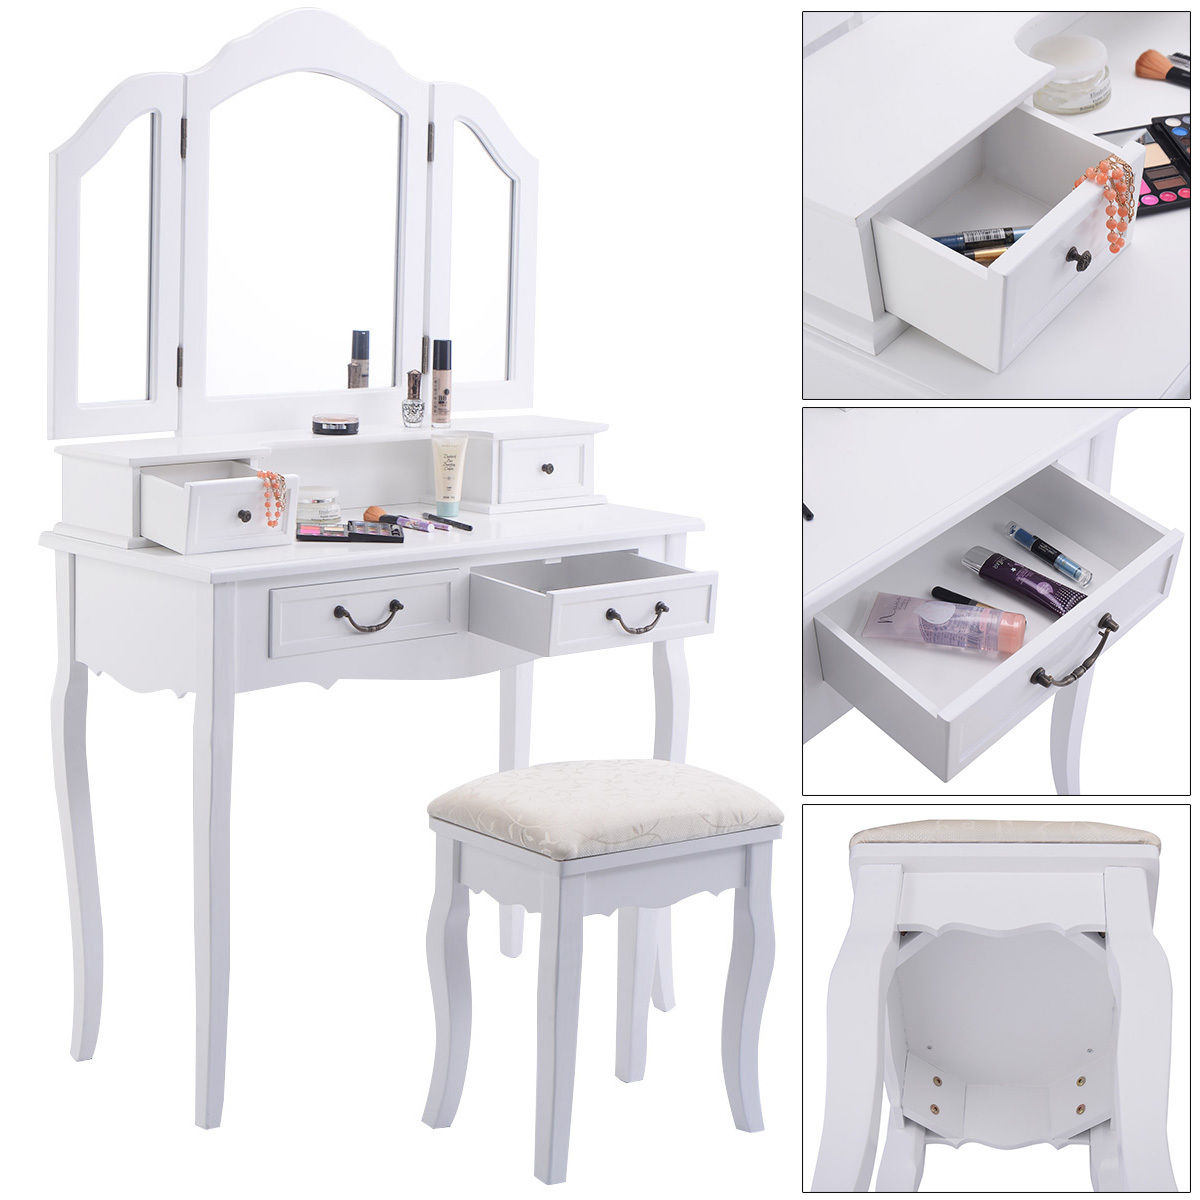 Bedroom Vanity Table with Drawers | Mirrored Vanity Set | Cheap Bedroom Vanity Sets